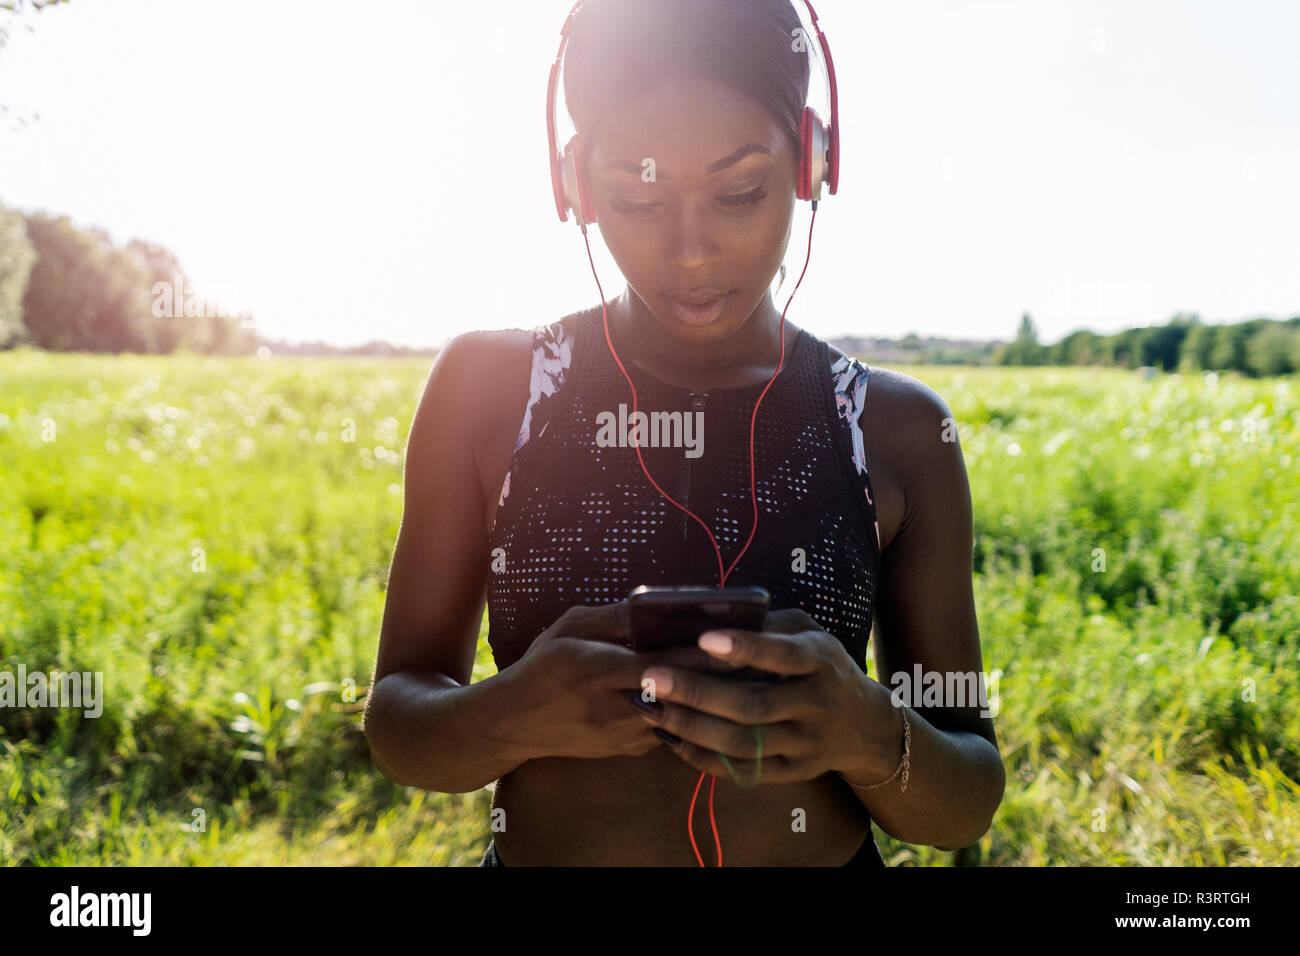 Young athlete in nature, listening music with headphones, holding smartphone - Stock Image